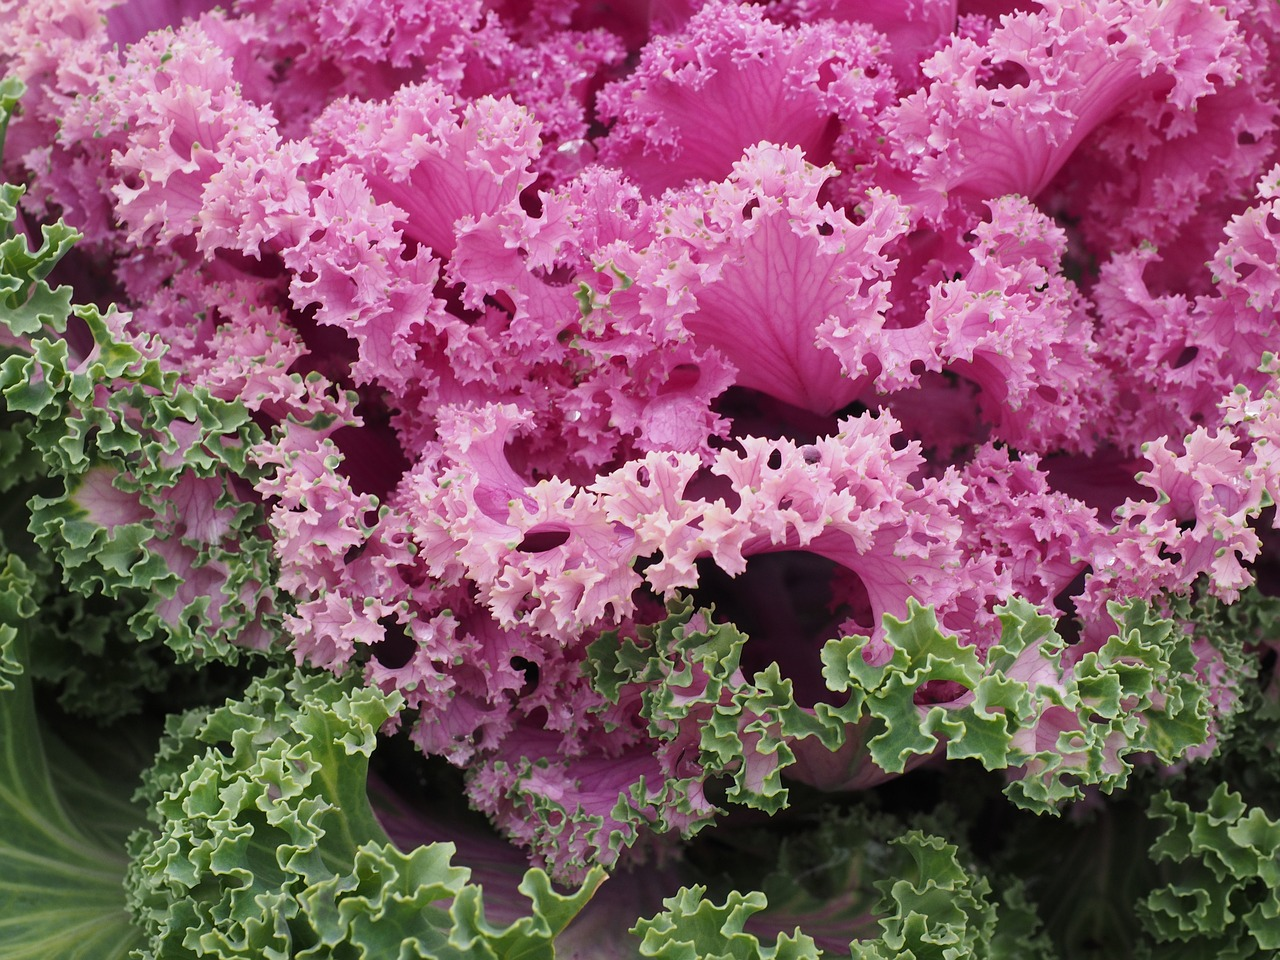 ornamental cabbage,leaves,kraus,fraktalähnlich,fractal,ornamental vegetables,ornamental plant,pink,brassica oleracea var,acephala,cabbage green,brassica oleracea,kohl,cabbage,vegetables,brassica,rosette,cabbage leaf,leaf,close,botany,plant,purple,violet,winter jewelry,krausblättrig,ornamental cabbage locations,ornamental cabbage chidori red,chidori red,free pictures, free photos, free images, royalty free, free illustrations